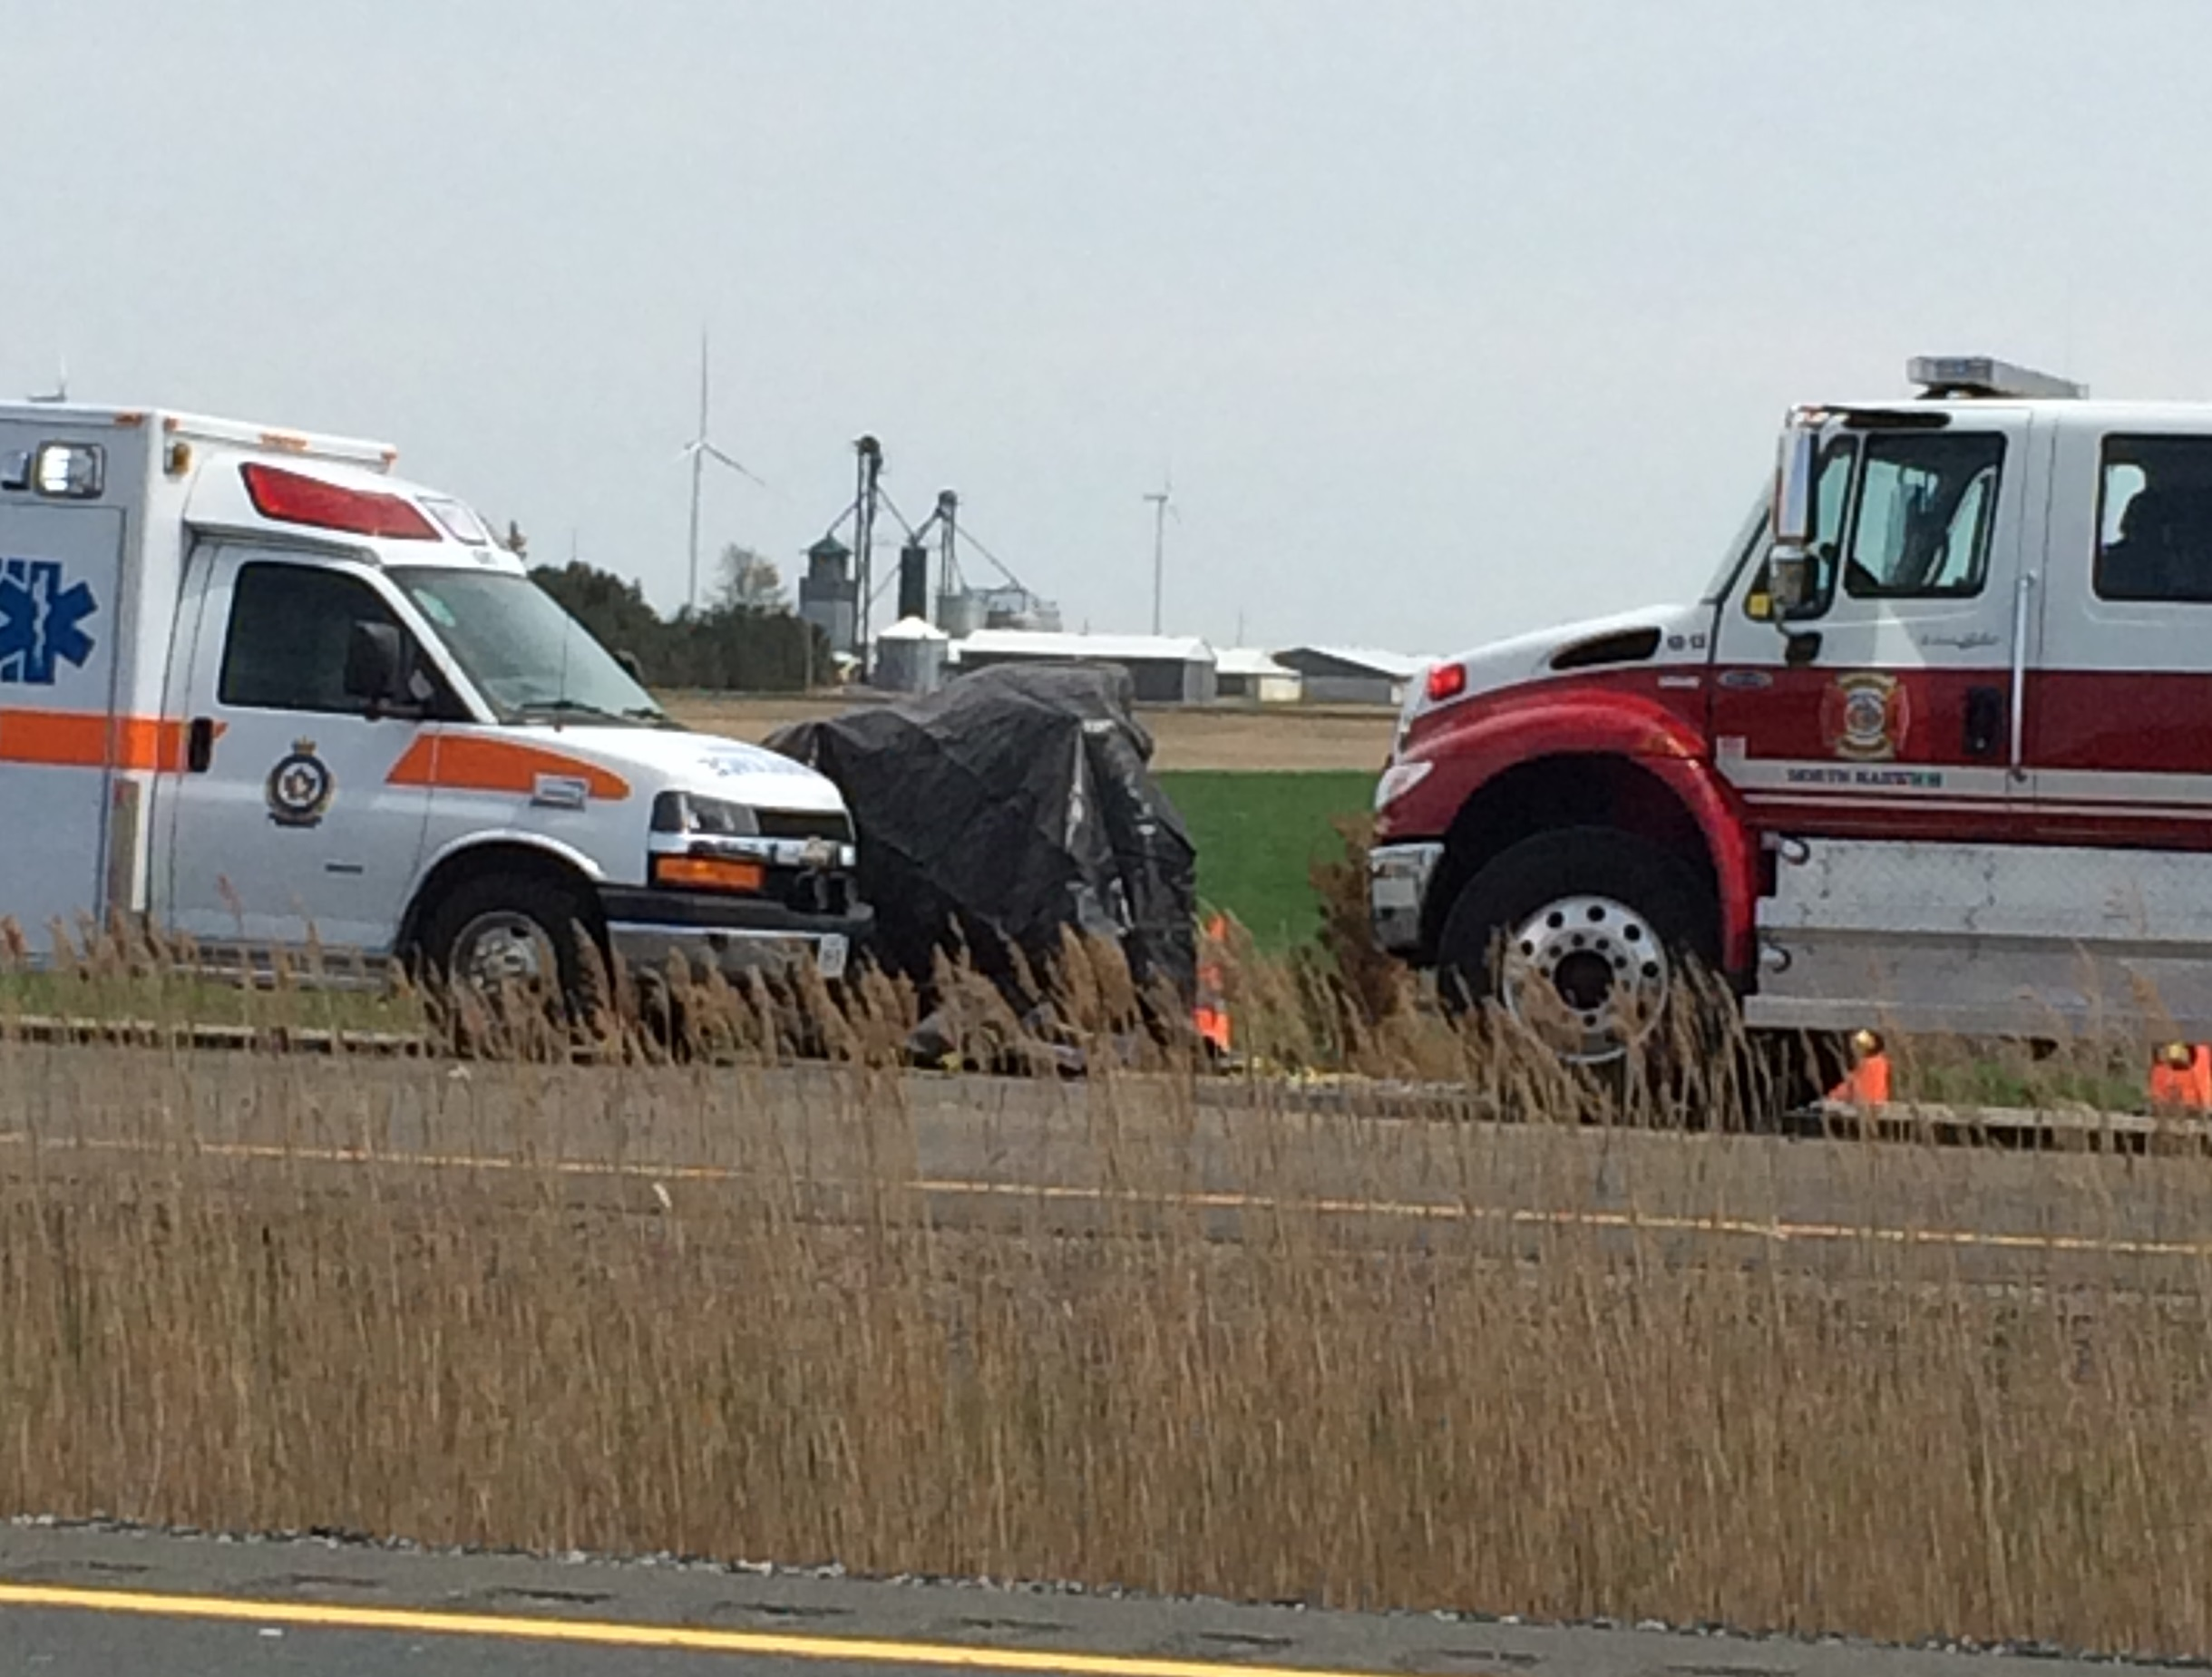 Emergency crews respond to a two-vehicle collision on Hwy. 401, west of Mull Rd, May 10, 2014. (Contributed photo)